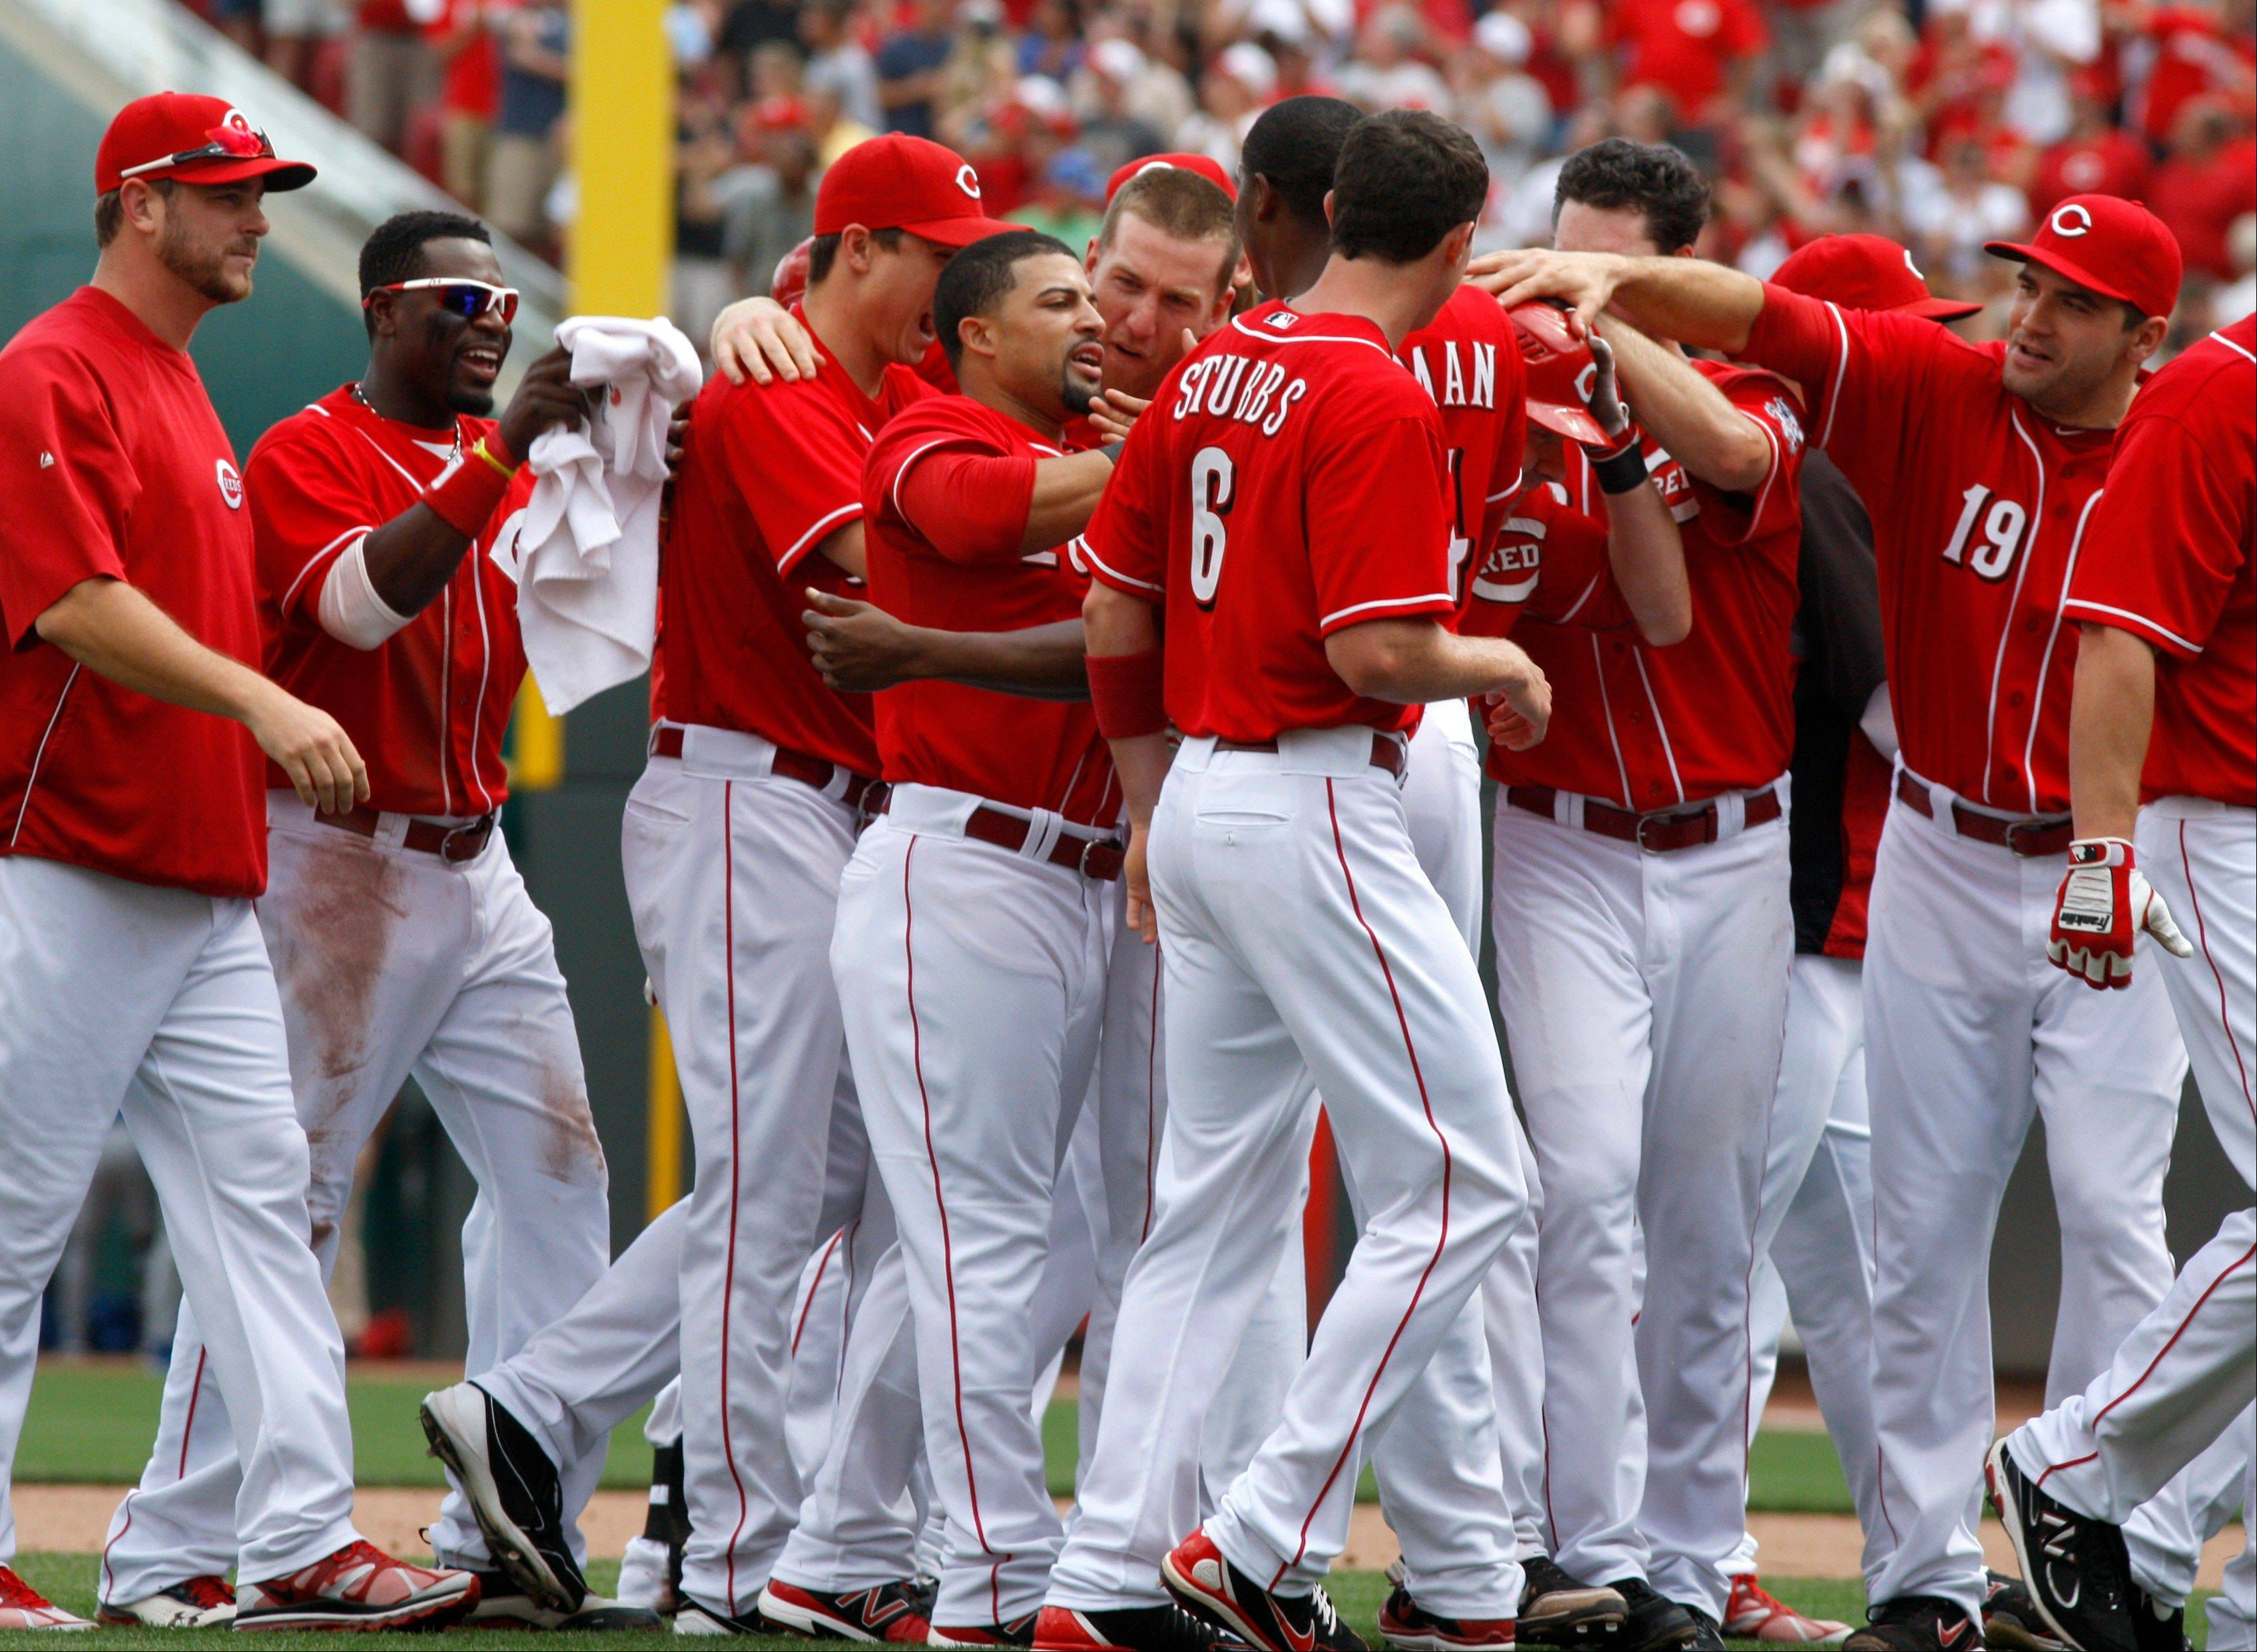 The Cincinnati Reds' Xavier Paul, fourth from left, is congratulated by teammates after the Reds defeated the Cubs 5-4 Sunday in Cincinnati.